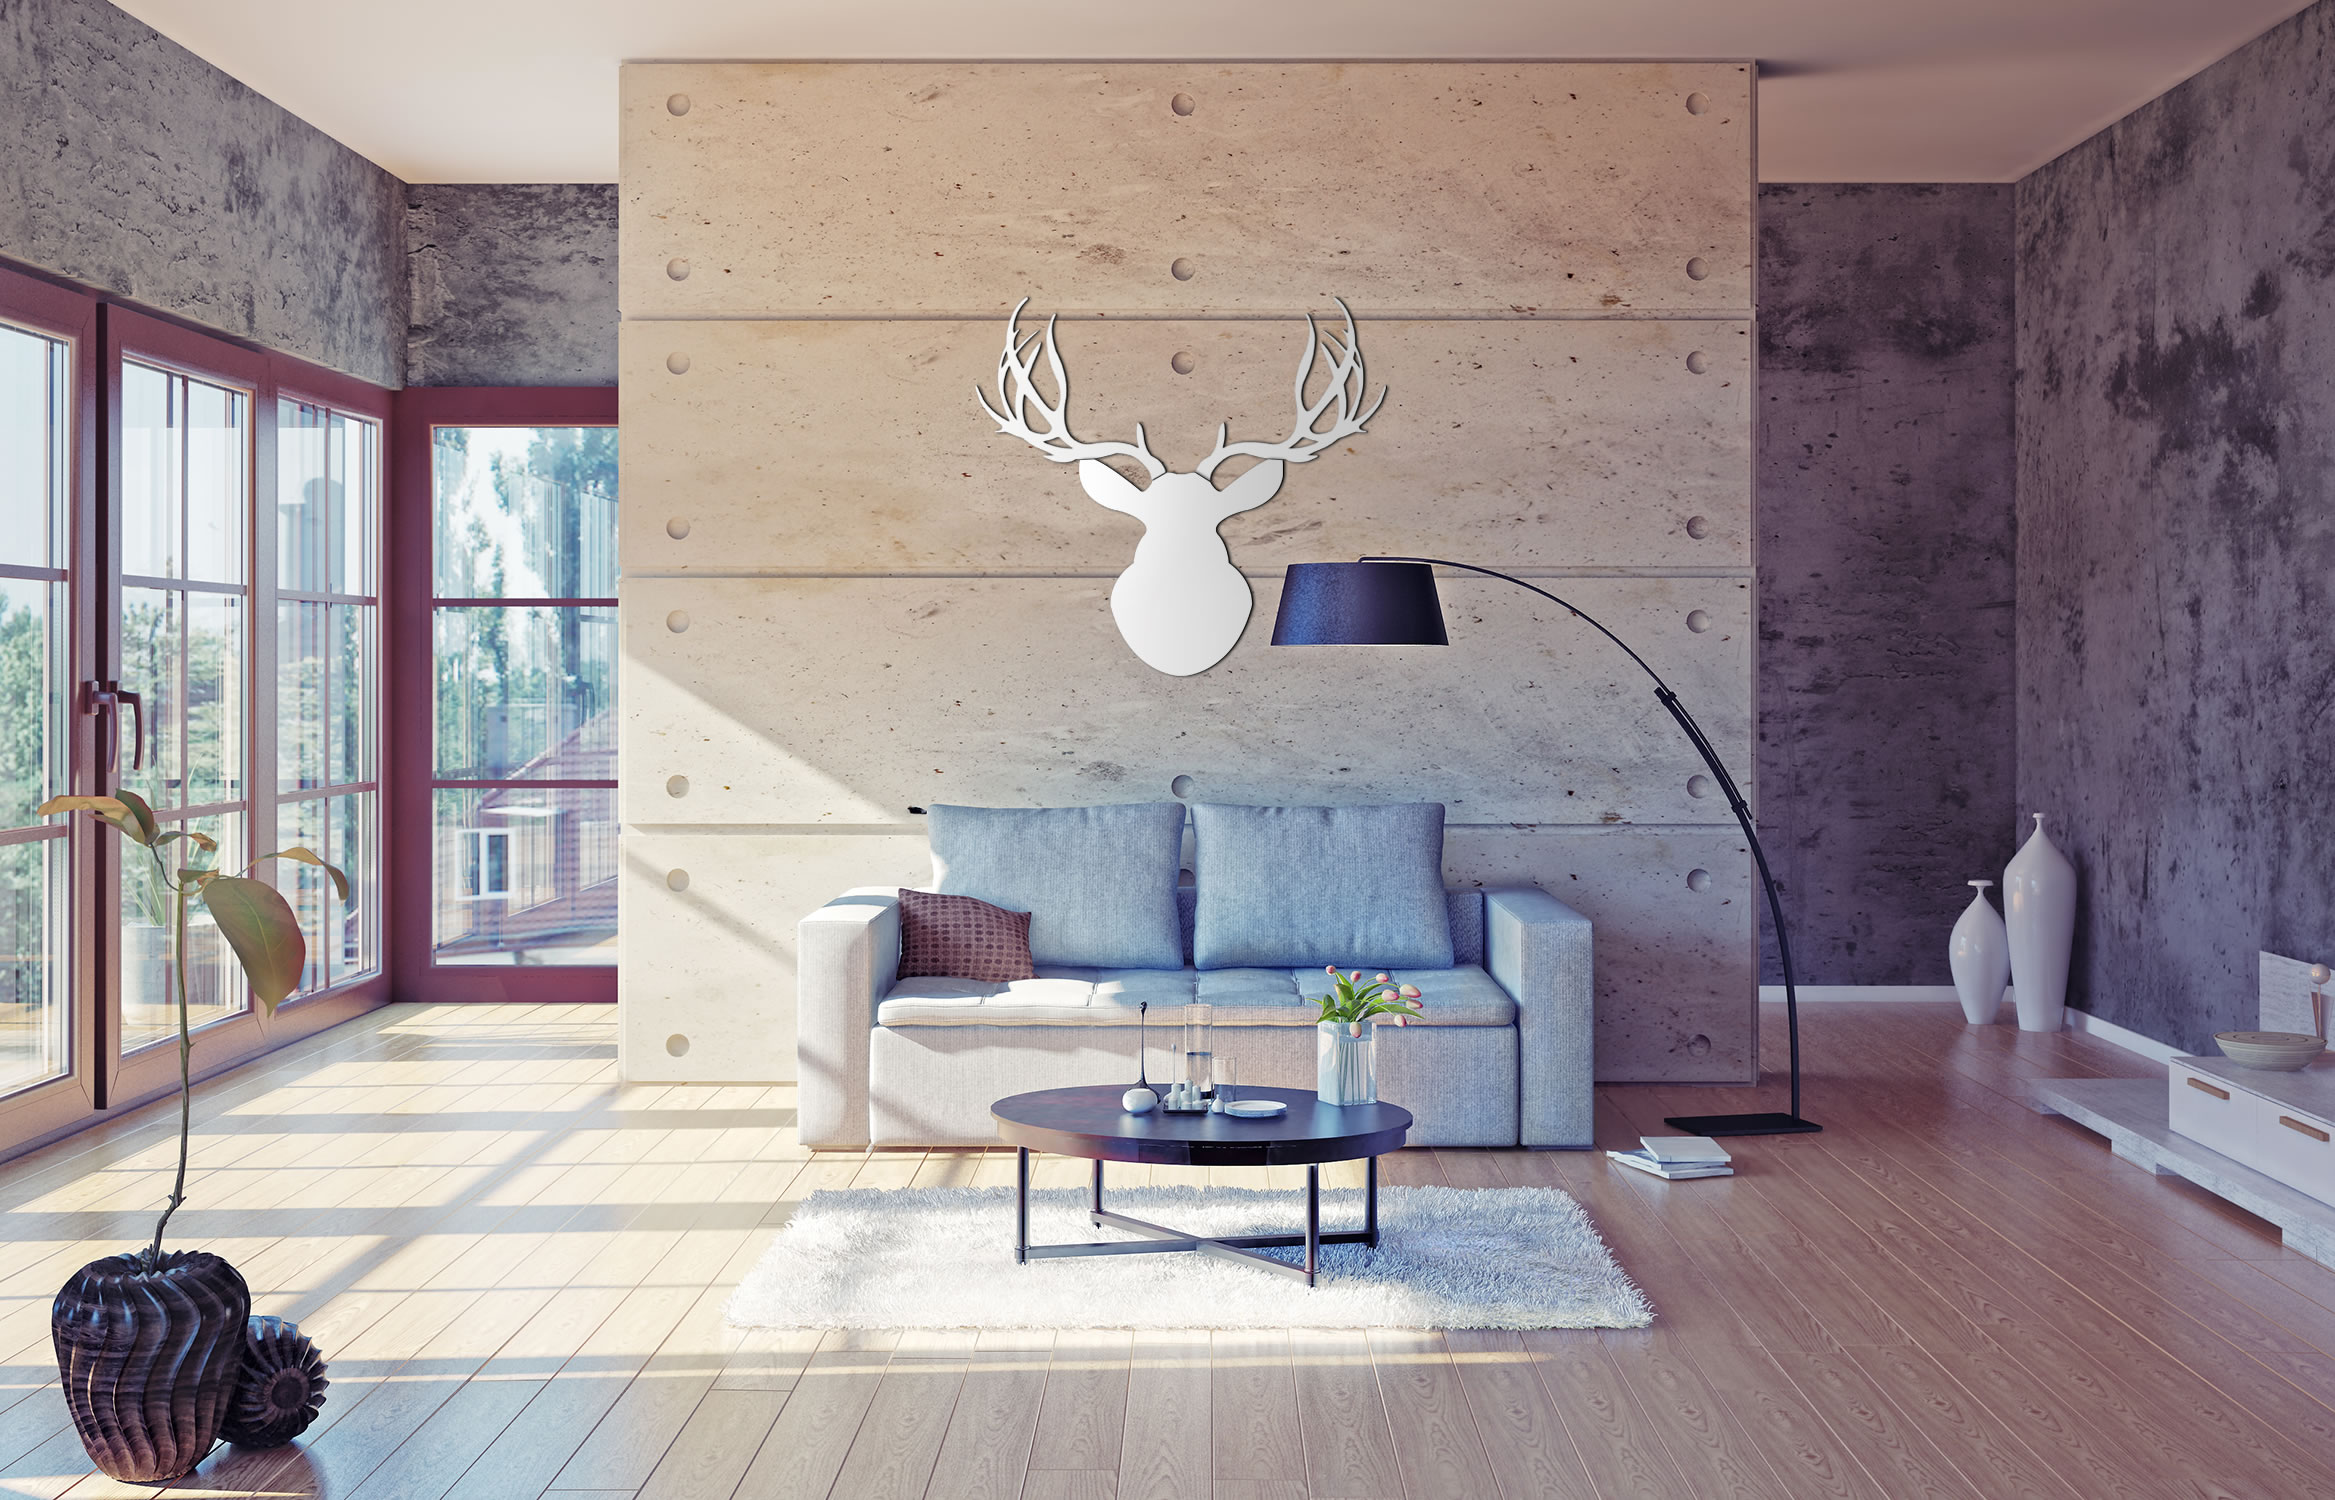 SNOW BUCK - 36x36 in. Pure White Deer Cut-Out - Lifestyle Image